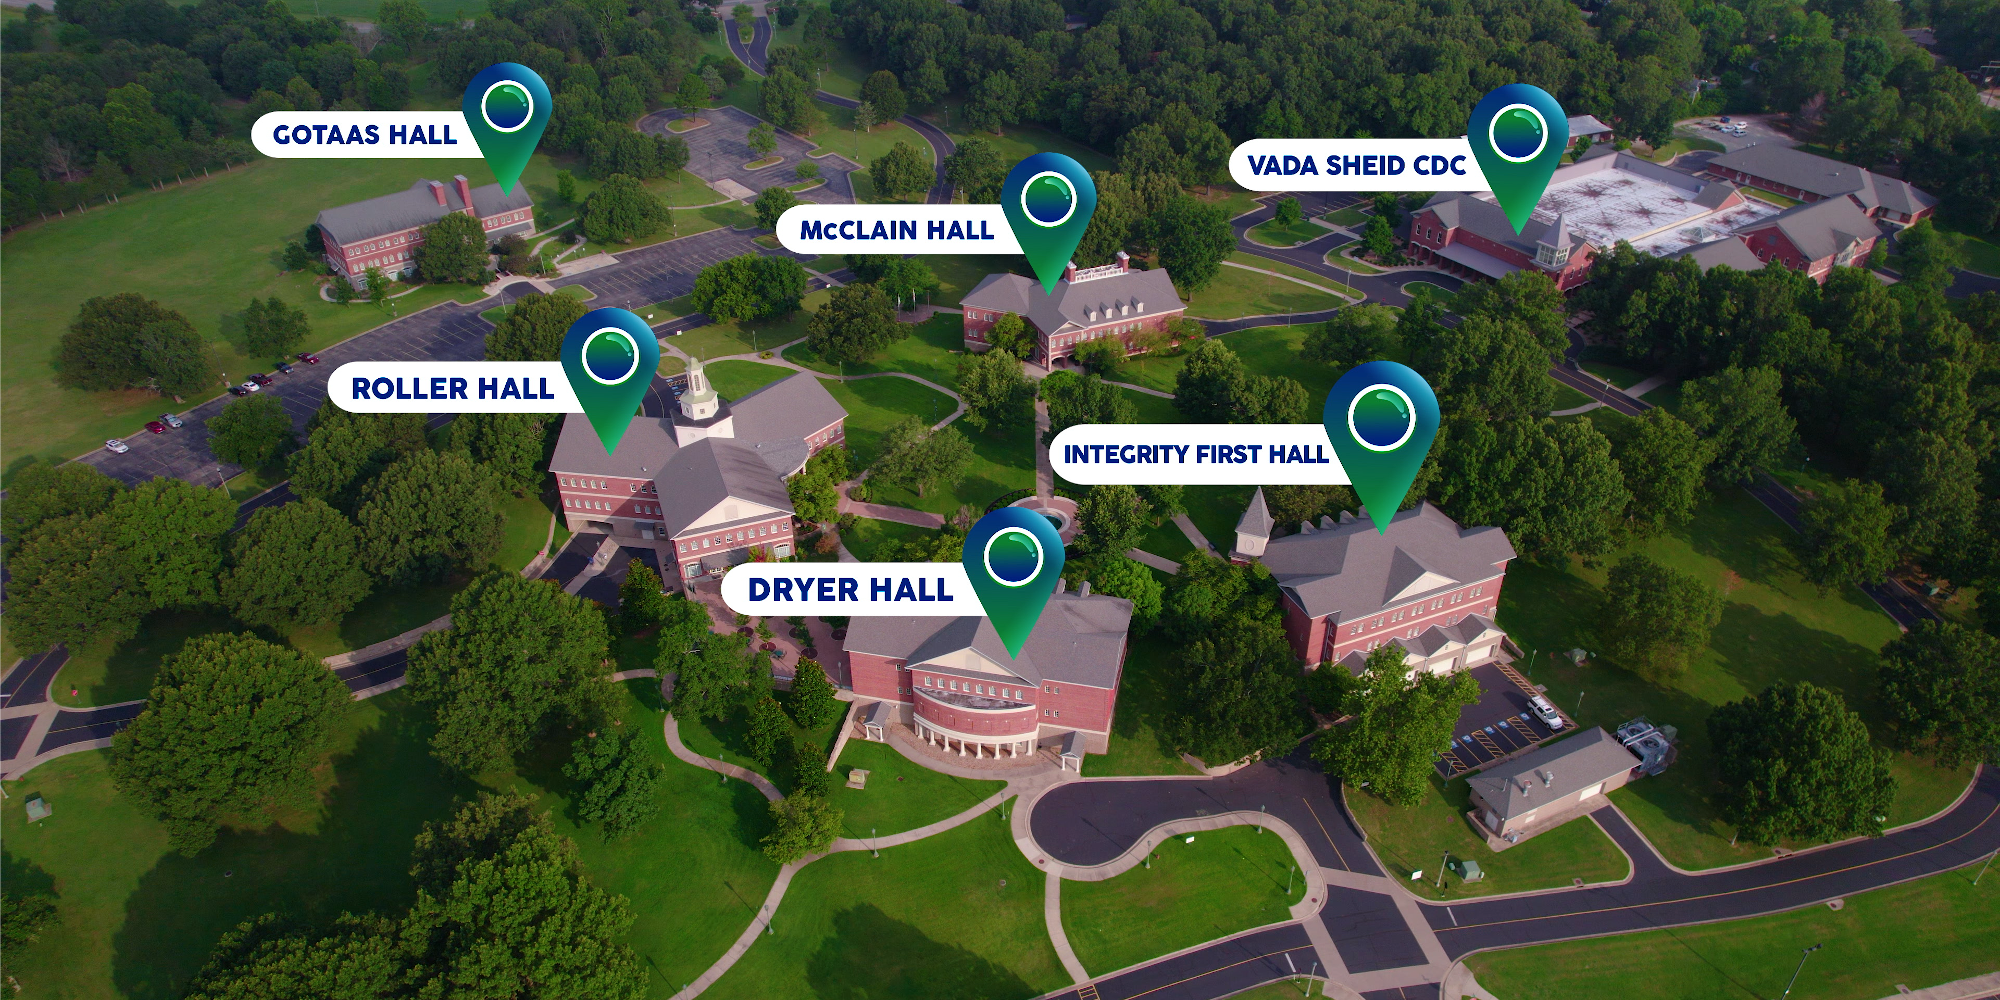 See our Virtual Campus Tour Take a look at this...